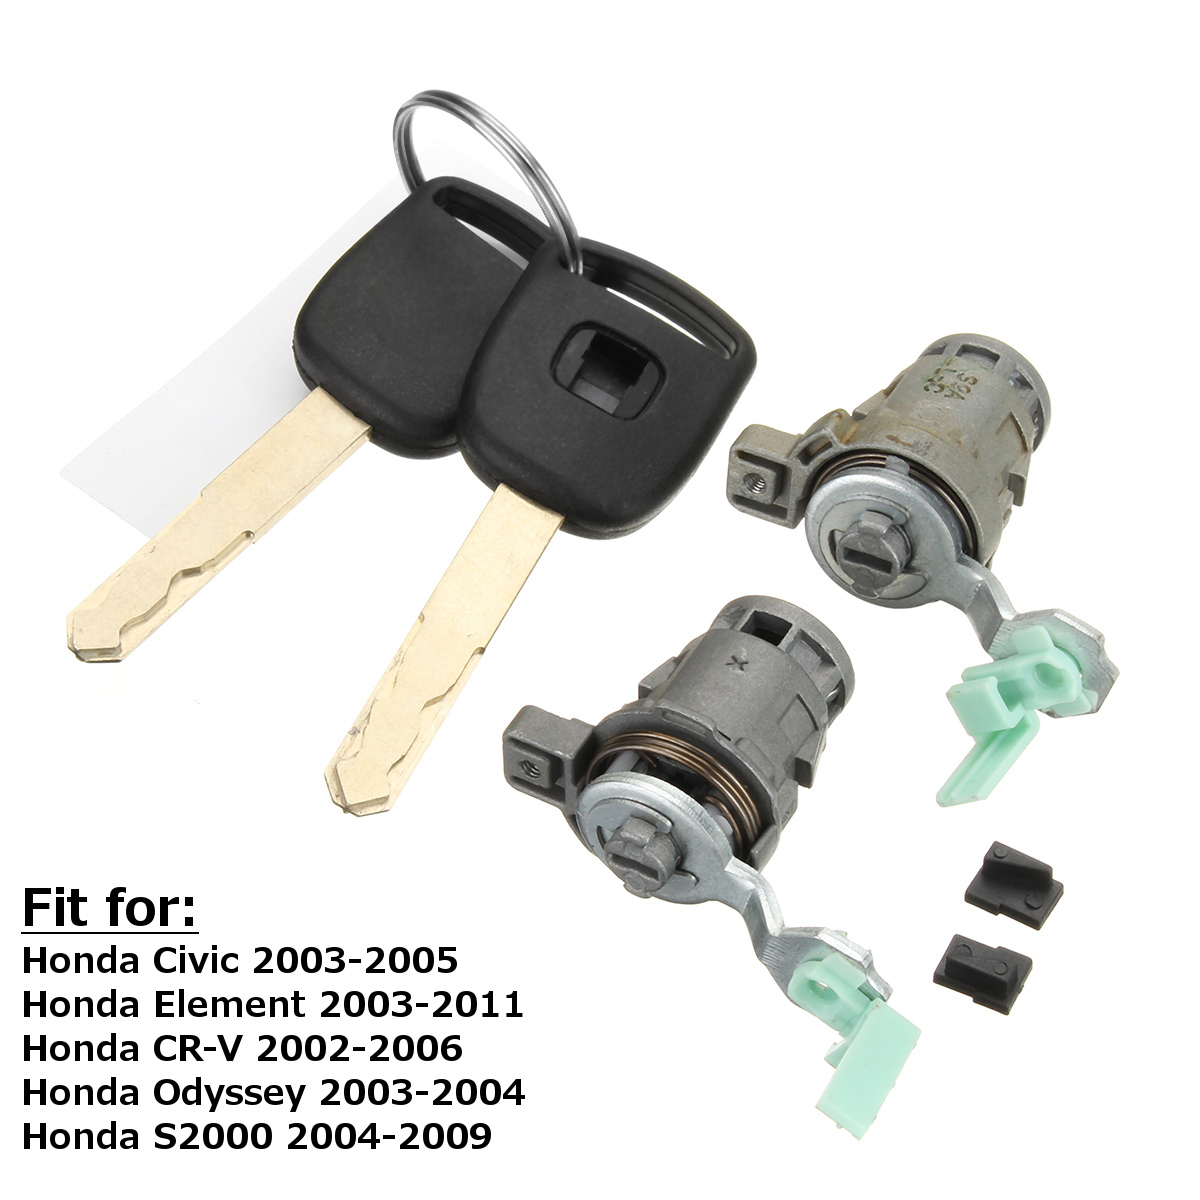 Left&Right Door Ignition Cylinder Lock W/Keys for Honda Civic Element for CR-V for Odyssey S2000 72185S9A013 72185-S9A-013 for renault kangoo complete lock set ignition switch left right door lock barrel cylinder with 2 same keys page 2